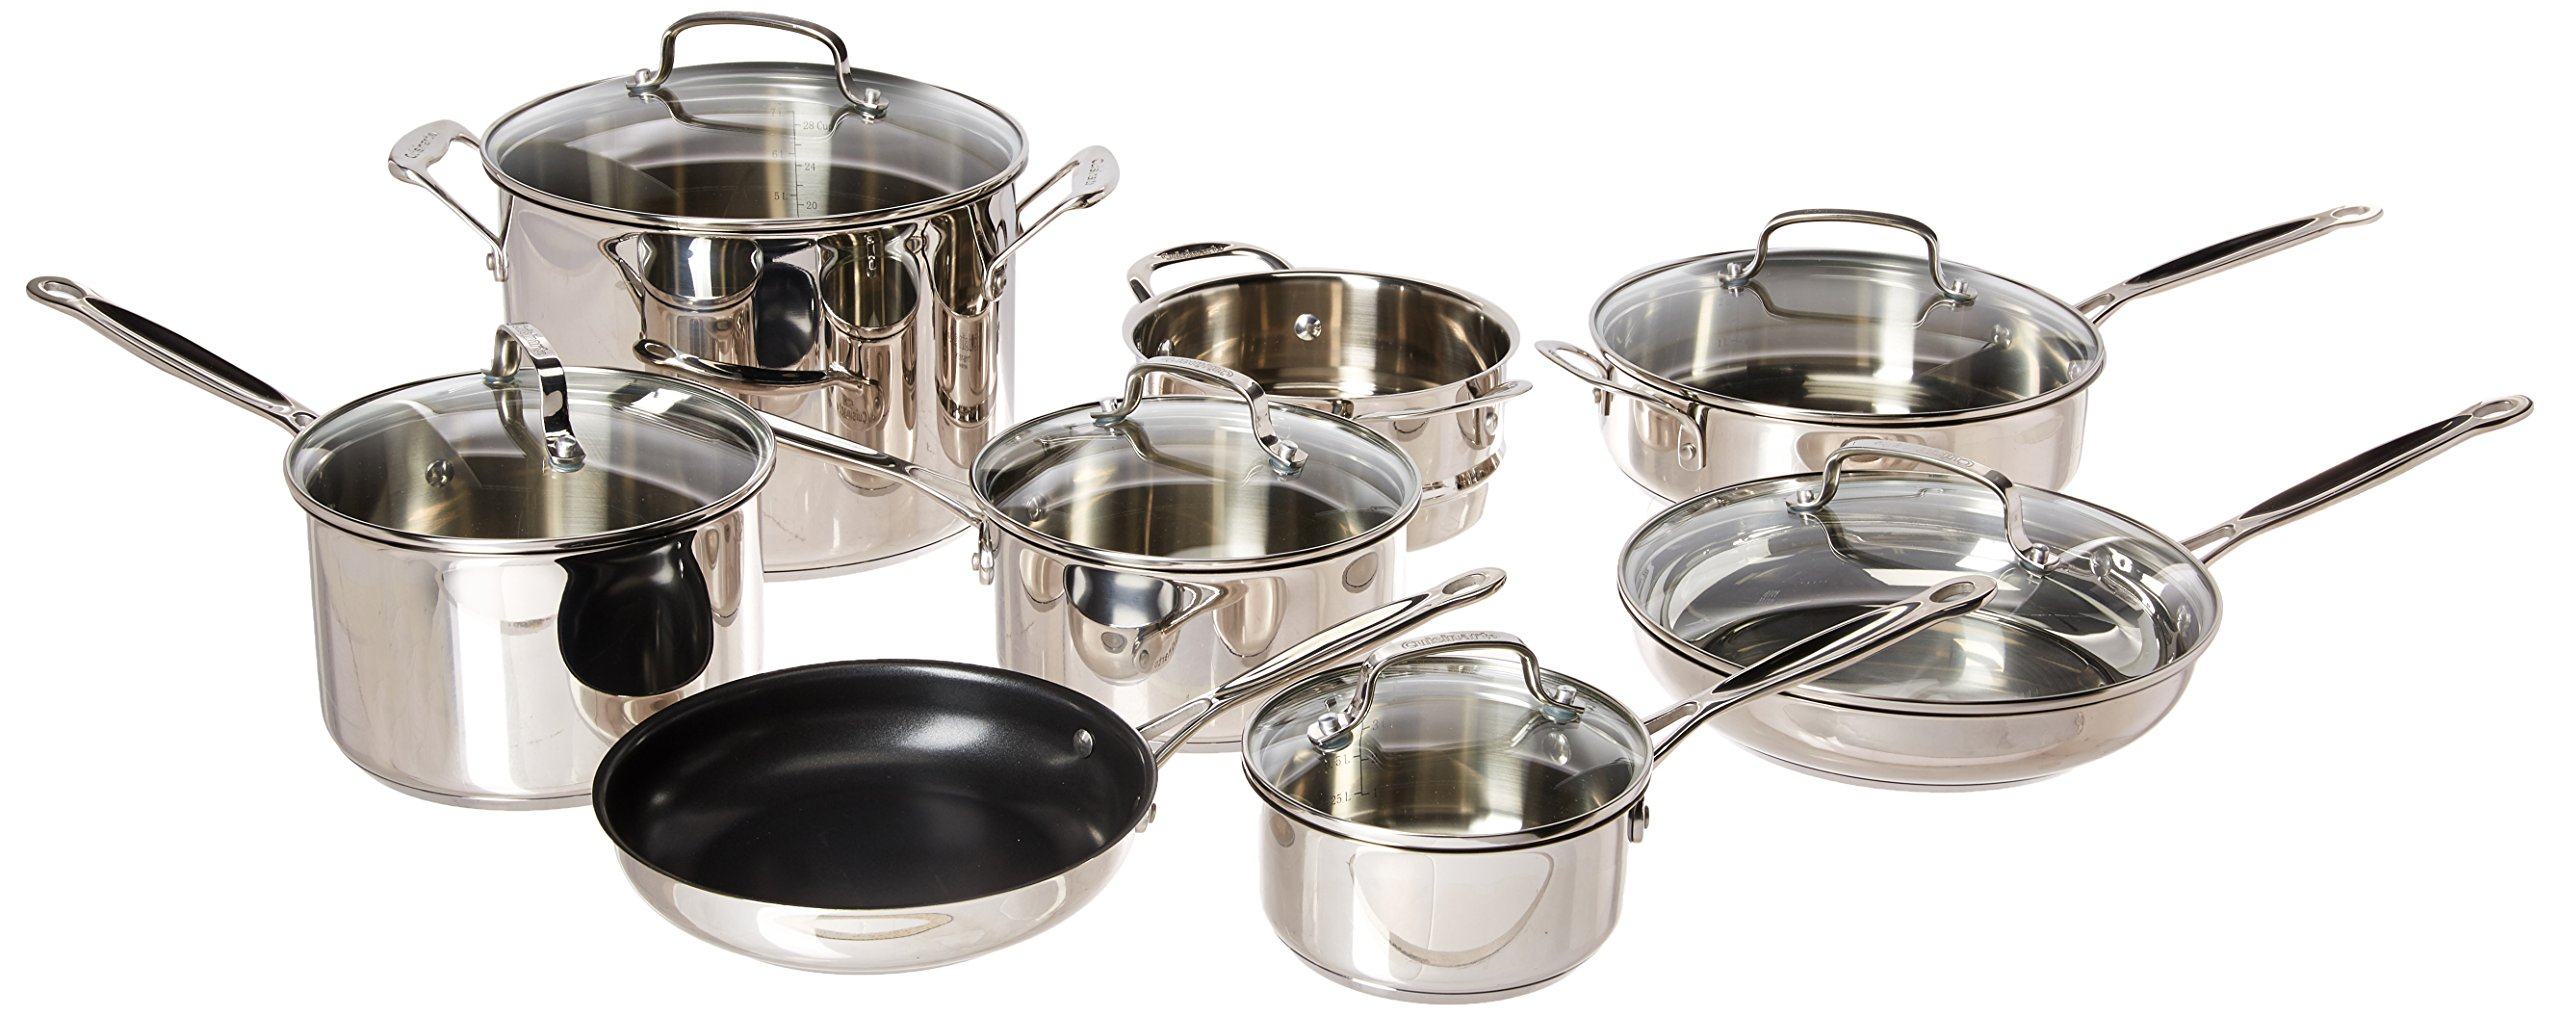 Cuisinart 77 14N Classic Stainless 14 Piece